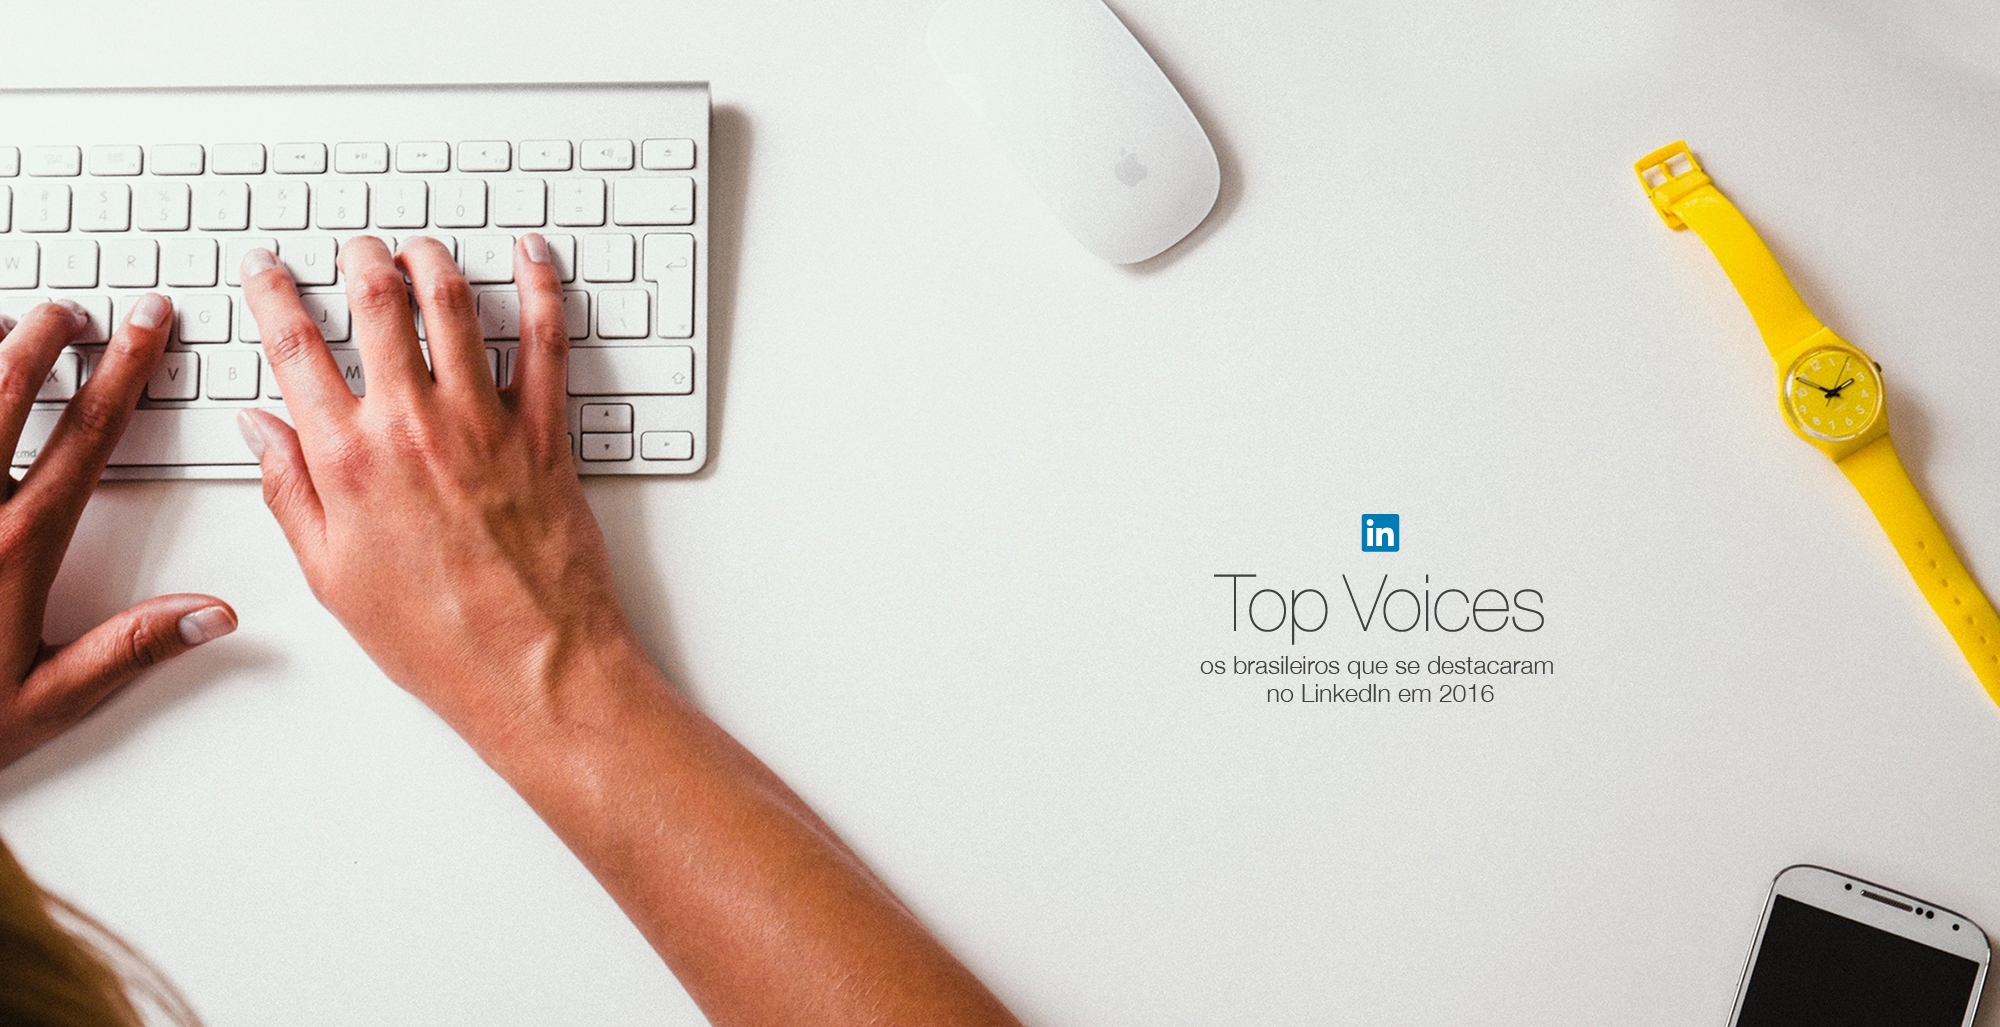 linkedin-top-voices-brasil